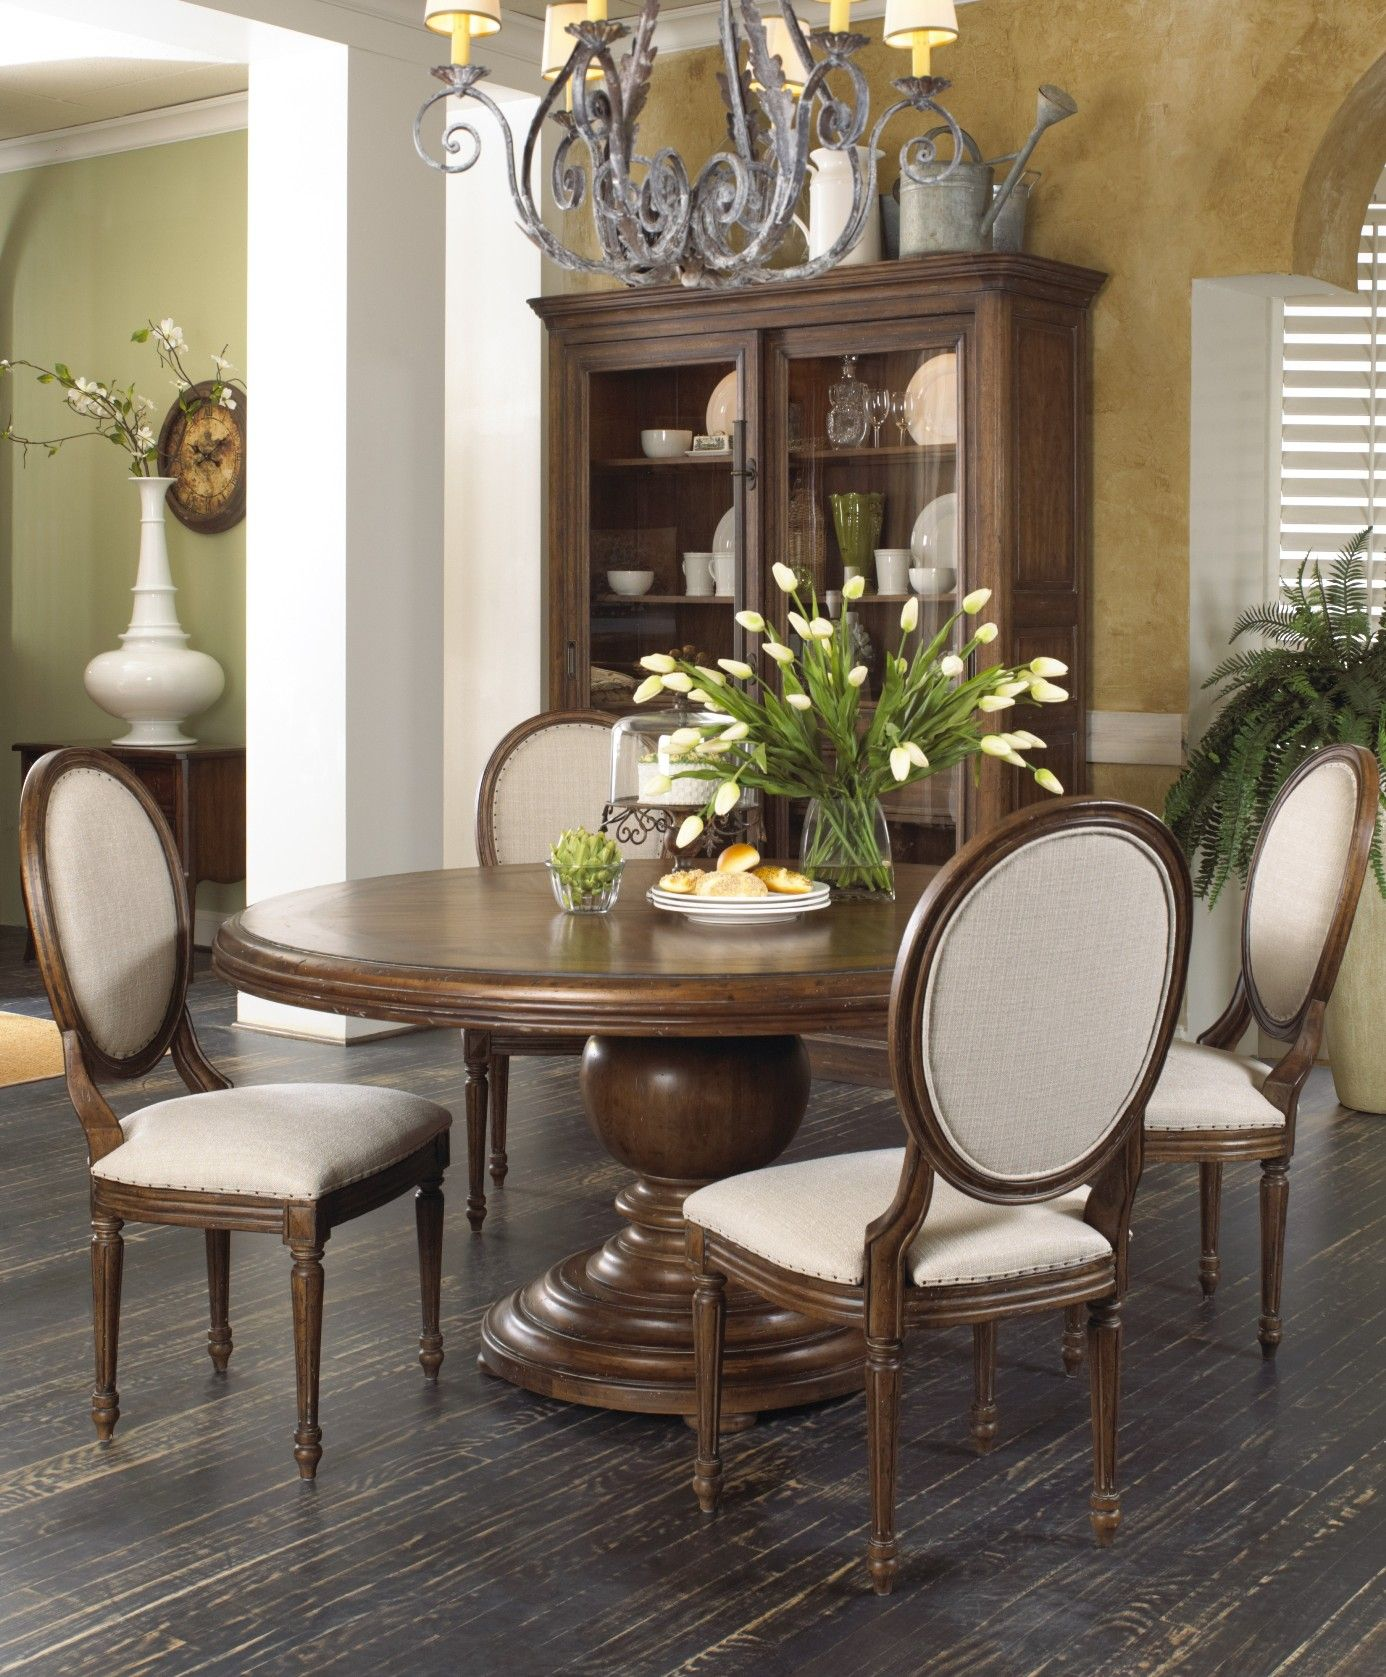 Dining Room Corner Decorating Ideas Space Saving Solutions: Used Dining Room Furniture; Creative Addition With Money